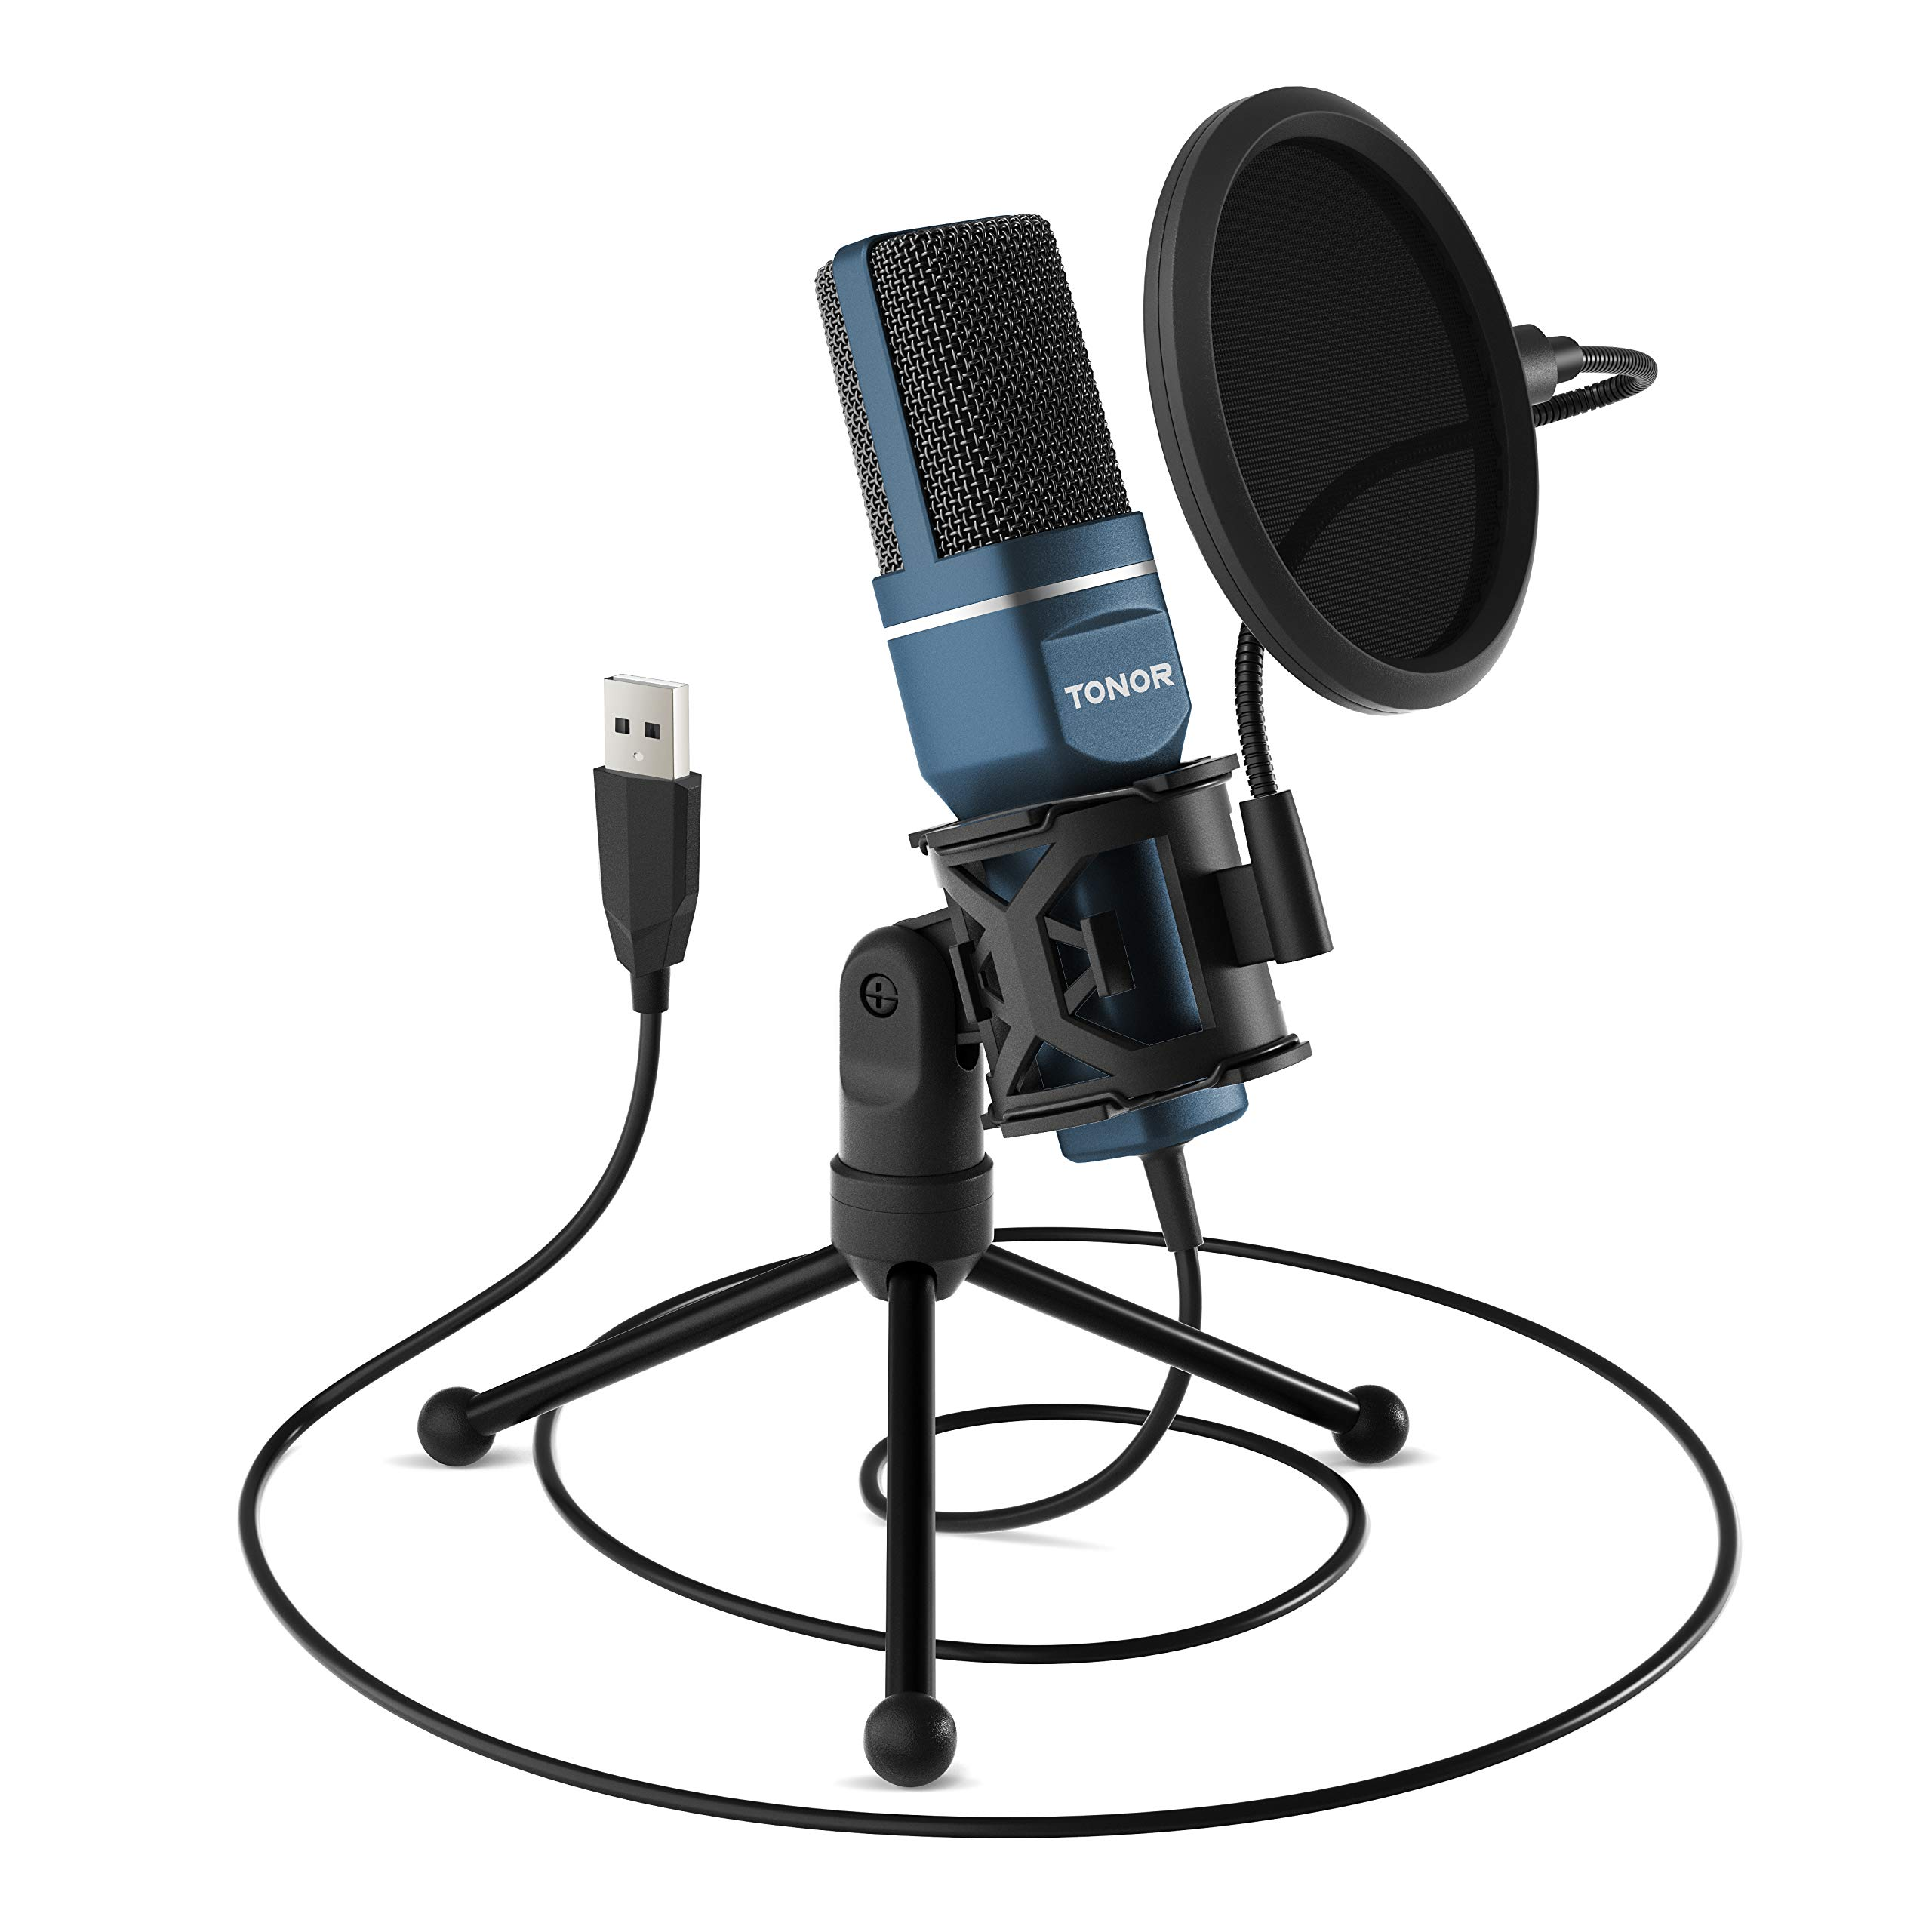 TONOR PC Microphone USB Computer Condenser Gaming Mic Plug & Play with Tripod Stand & Pop Filter for Vocal Recording, Podcasting, Streaming for PC Laptop Desktop Windows Computer